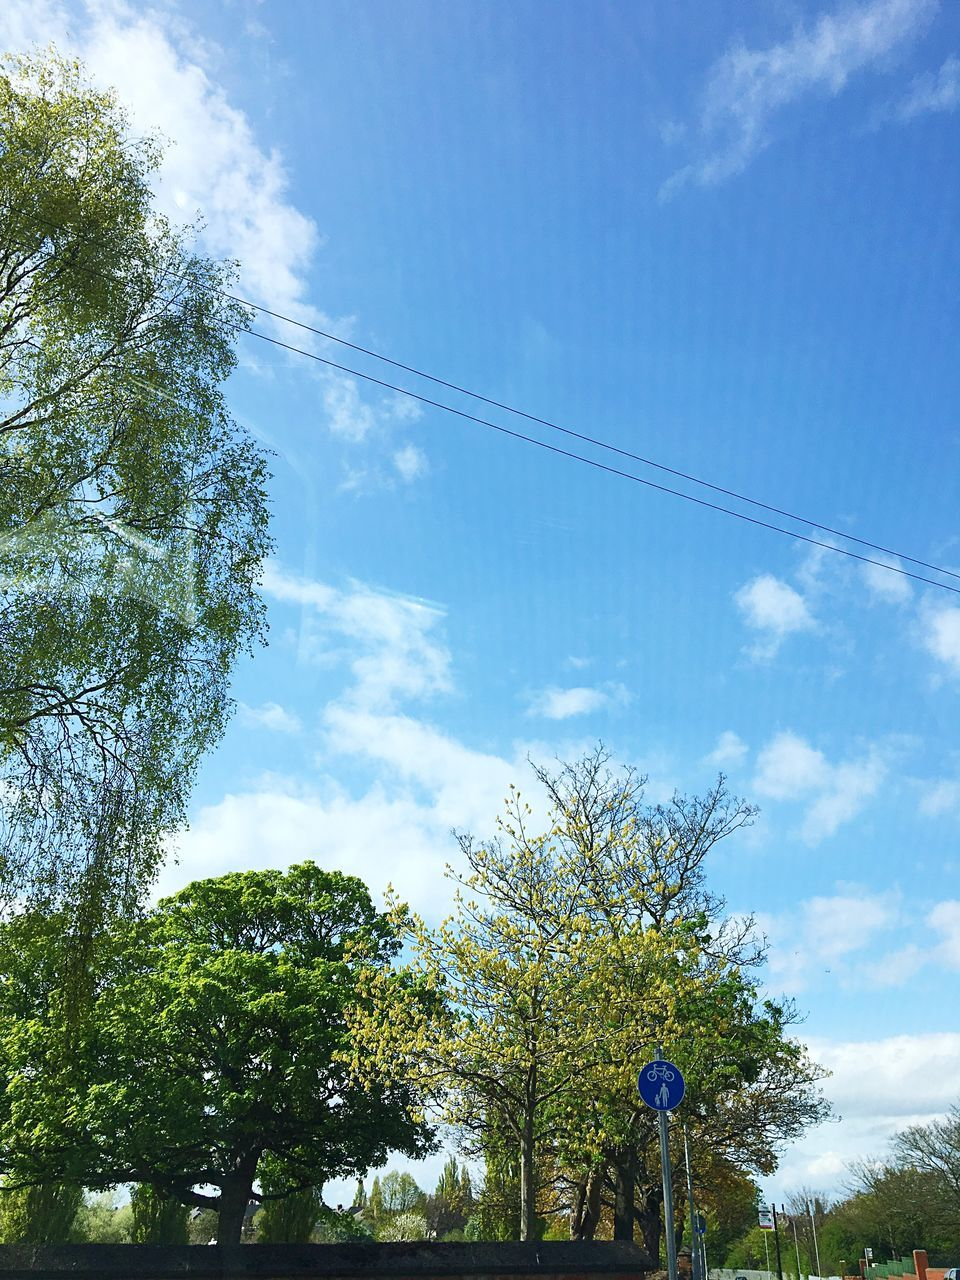 tree, low angle view, sky, cloud - sky, day, nature, outdoors, real people, growth, one person, beauty in nature, blue, men, technology, people